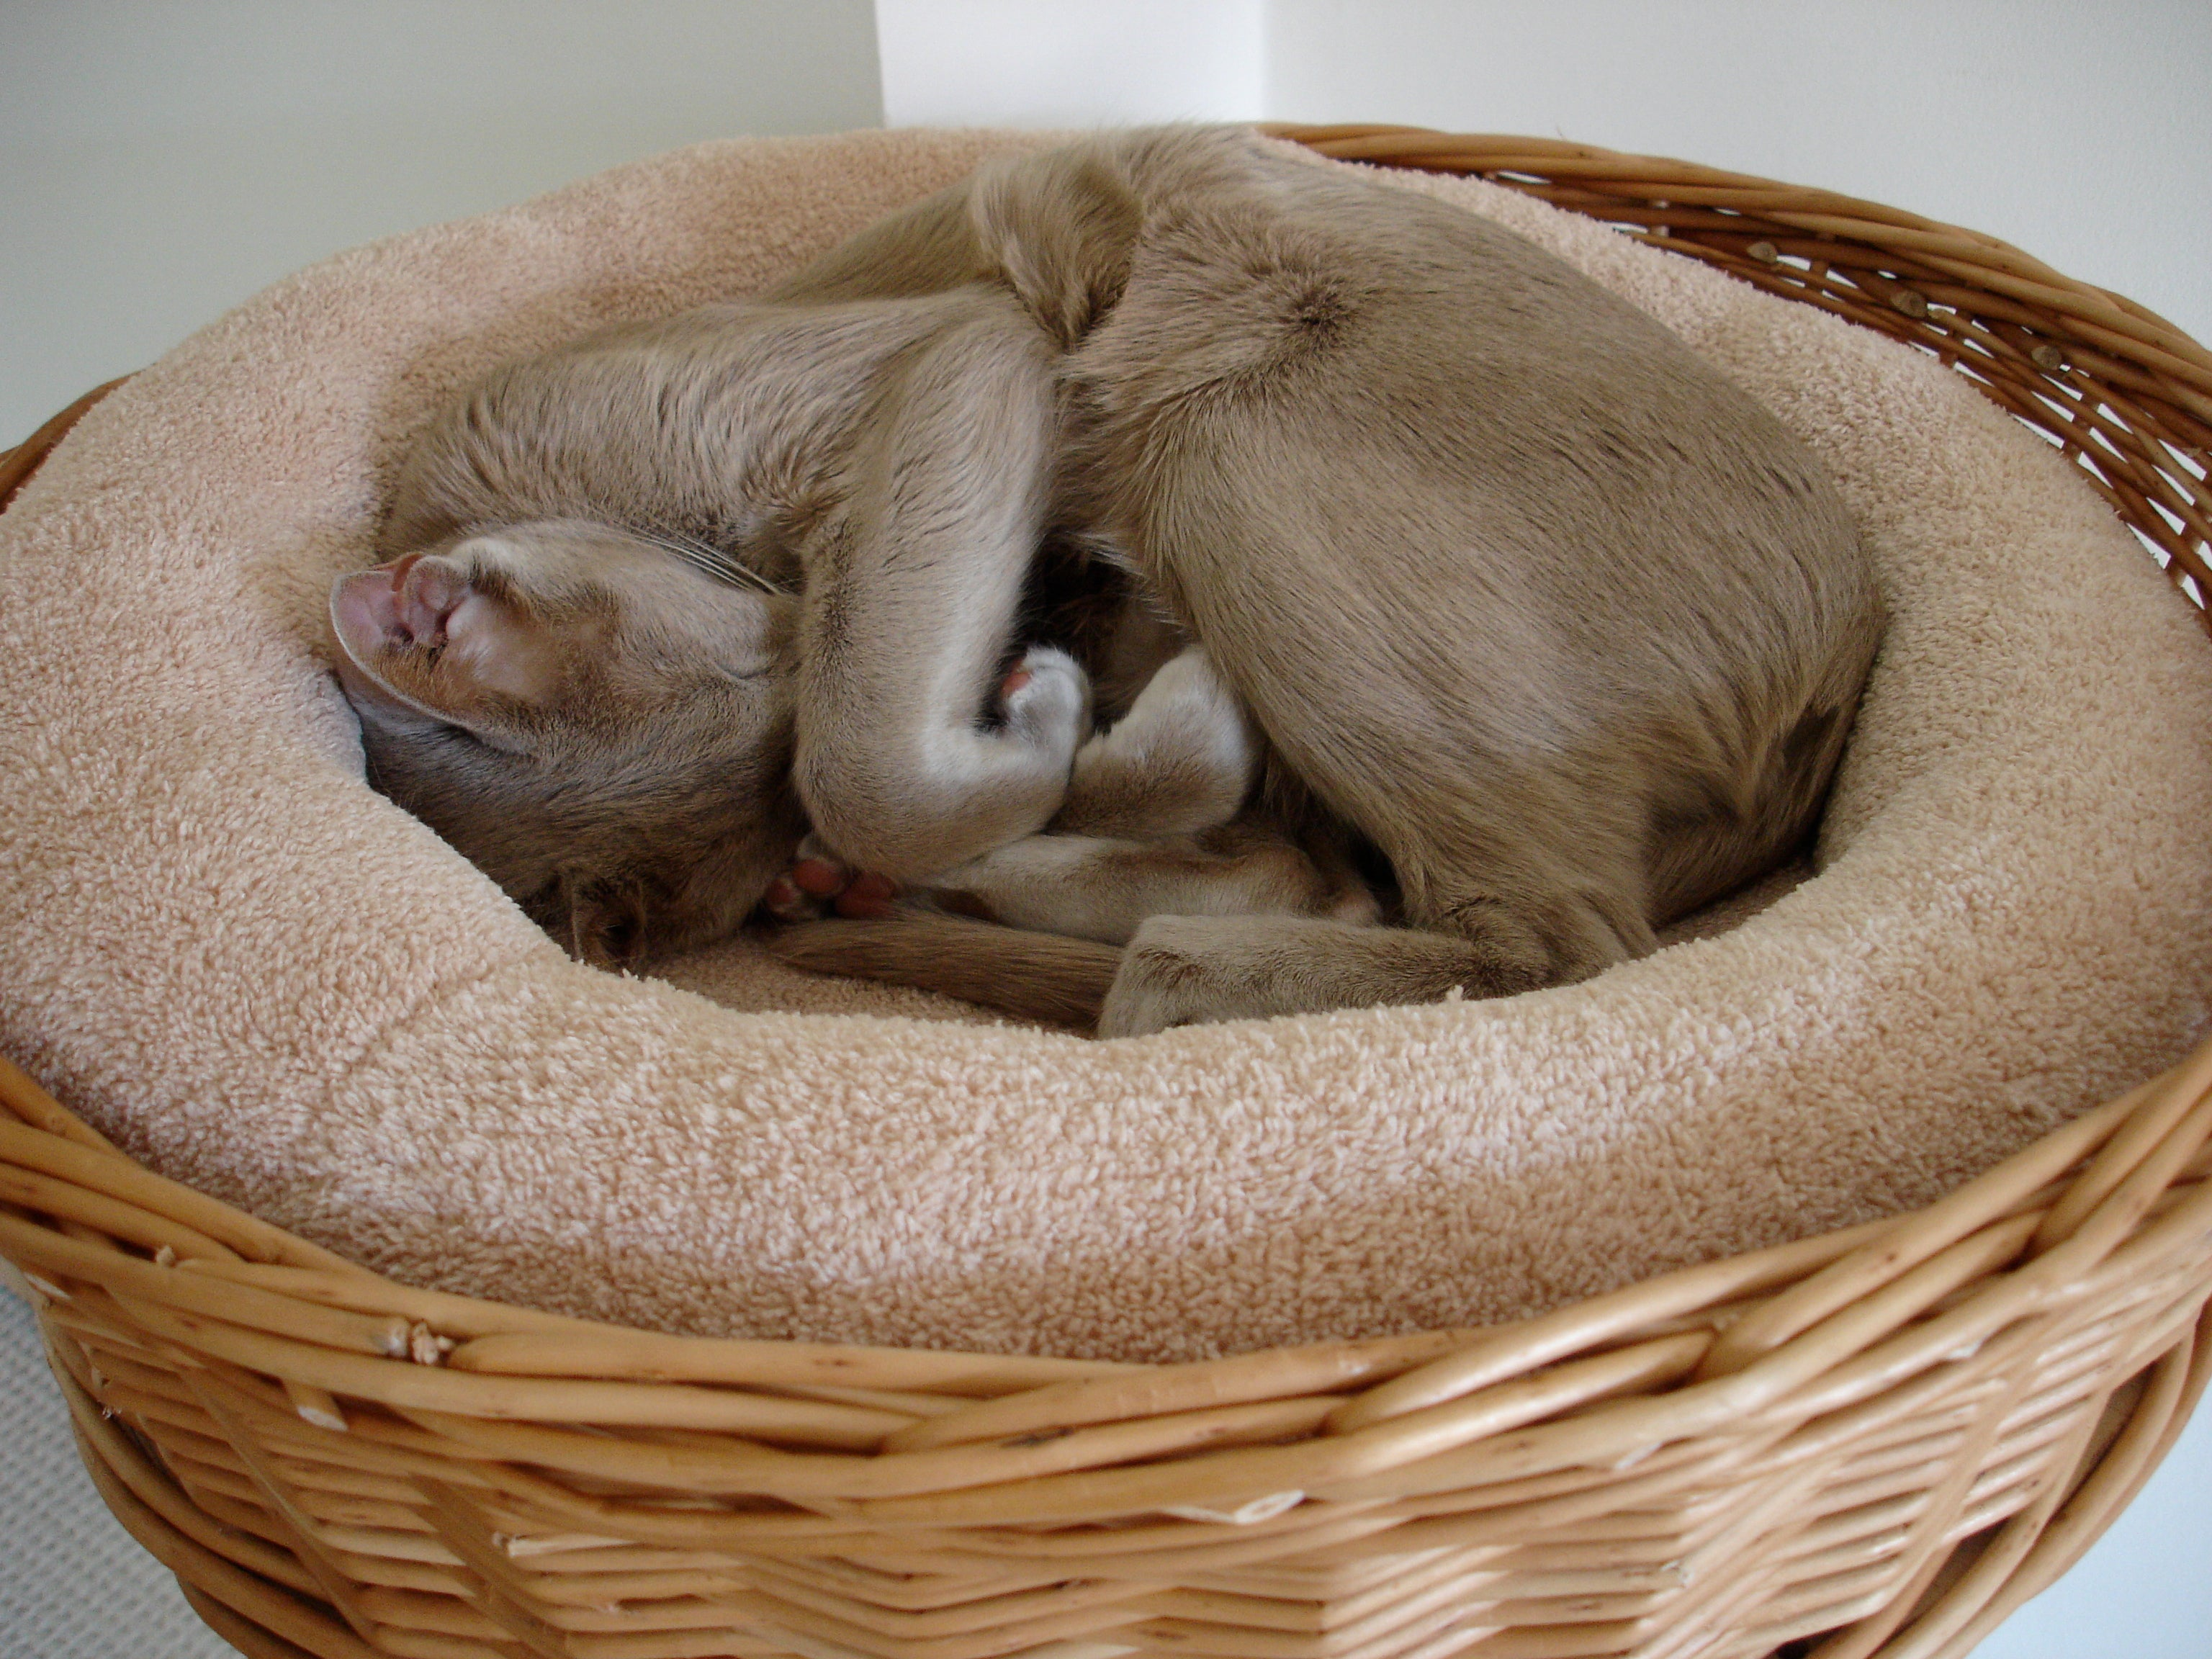 Cat curled up in round wicker basket